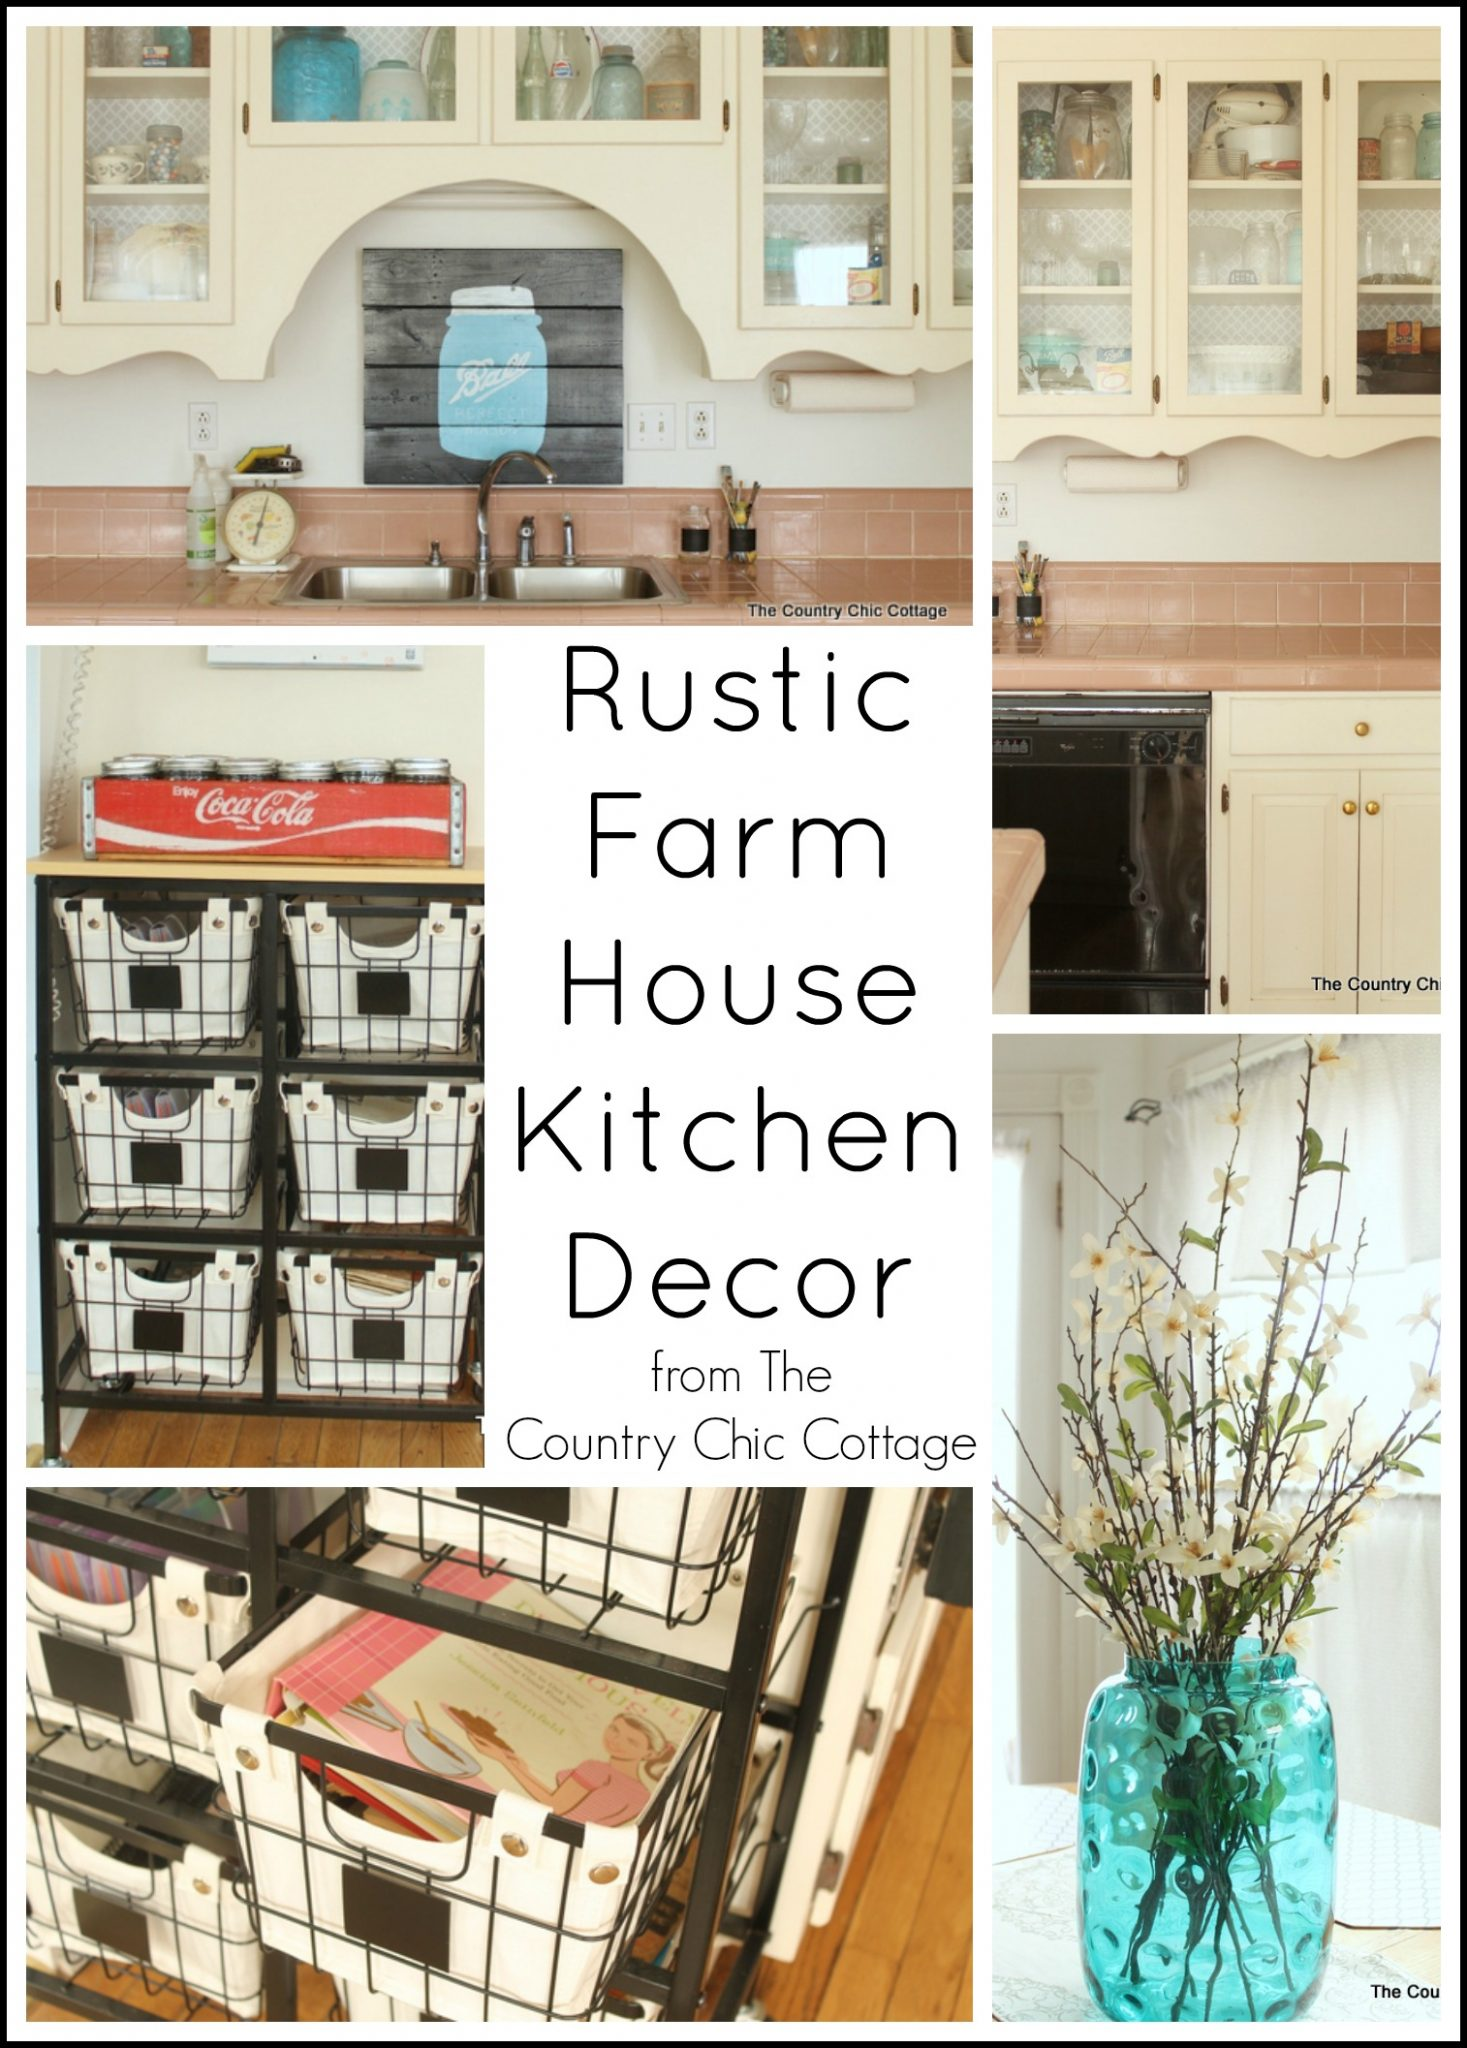 Rustic Kitchen Accessories Rustic Farmhouse Kitchen Decor The Country Chic Cottage